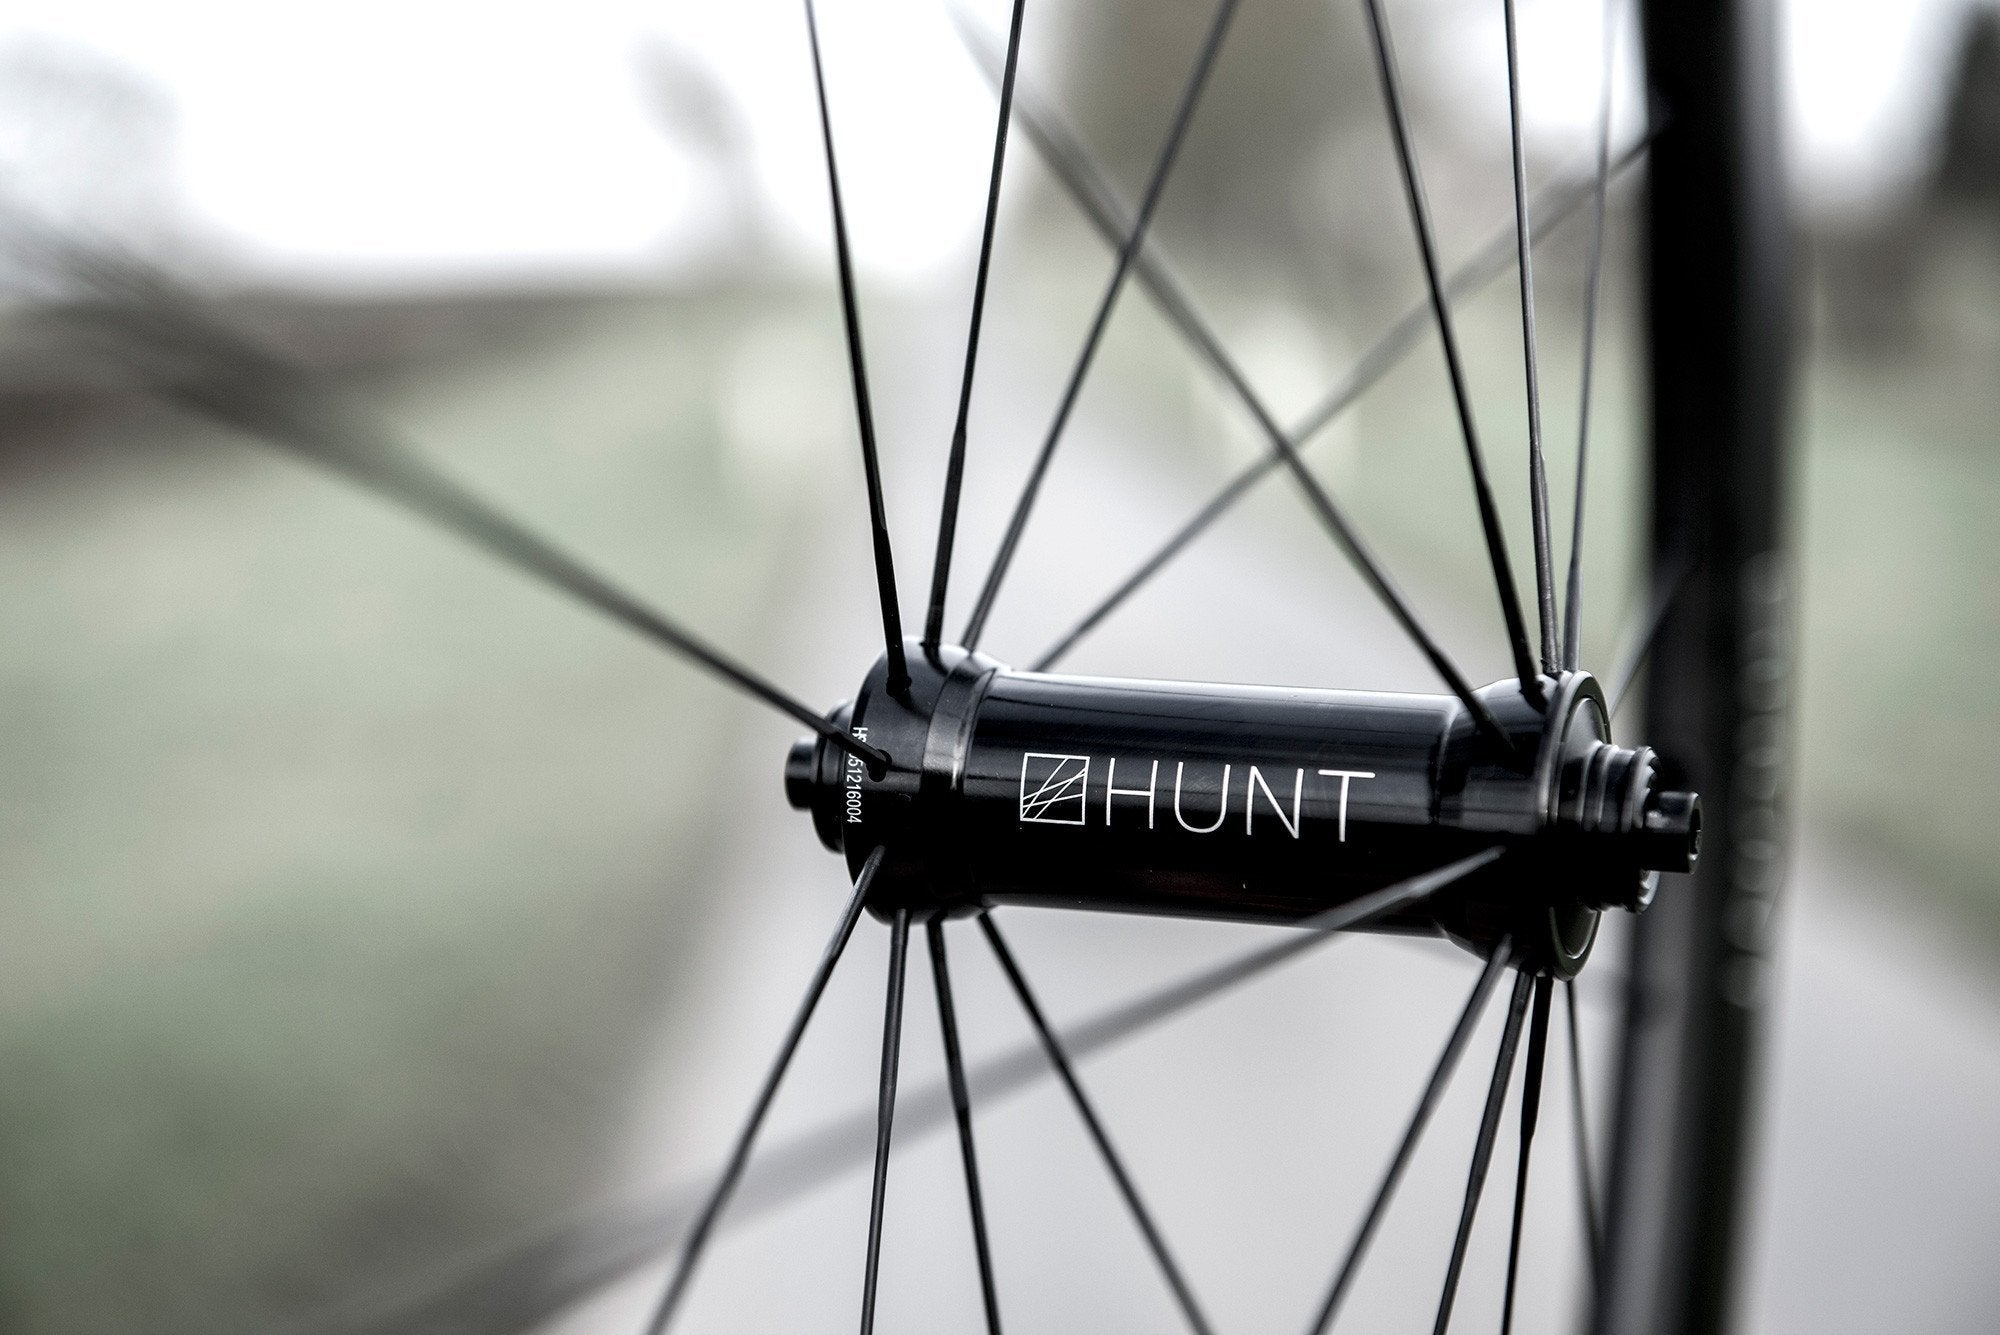 <h1>Spokes</h1><i>We chose the top-of-the-range Pillar Spoke Re-enforcement PSR XTRA models. These butted blade aero spokes are lighter and provide a greater degree of elasticity to maintain tensions longer and add fatigue resistance. PSR spokes feature the 2.2 width at the head providing more material in this high stress area. Nipples are 14mm alloy, anodized and come with a hex head so you can achieve precise tensioning. Combining components well is key which is why all Hunt wheels are hand-built.</i>